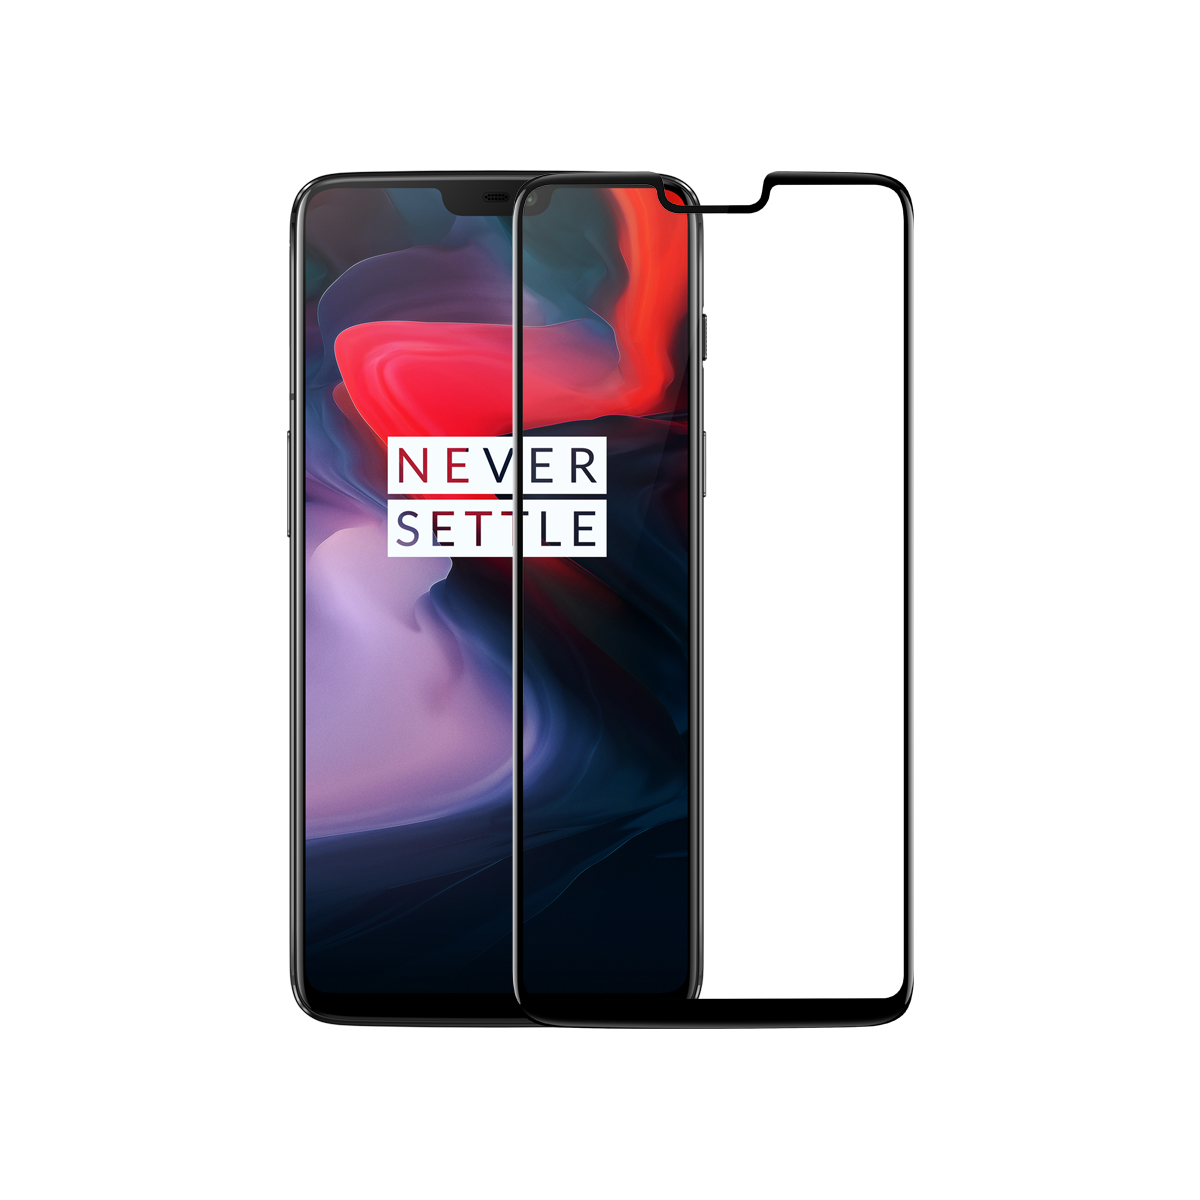 official photos 598a5 b2870 OnePlus 6 3D Tempered Glass Screen Protector - OnePlus (India)